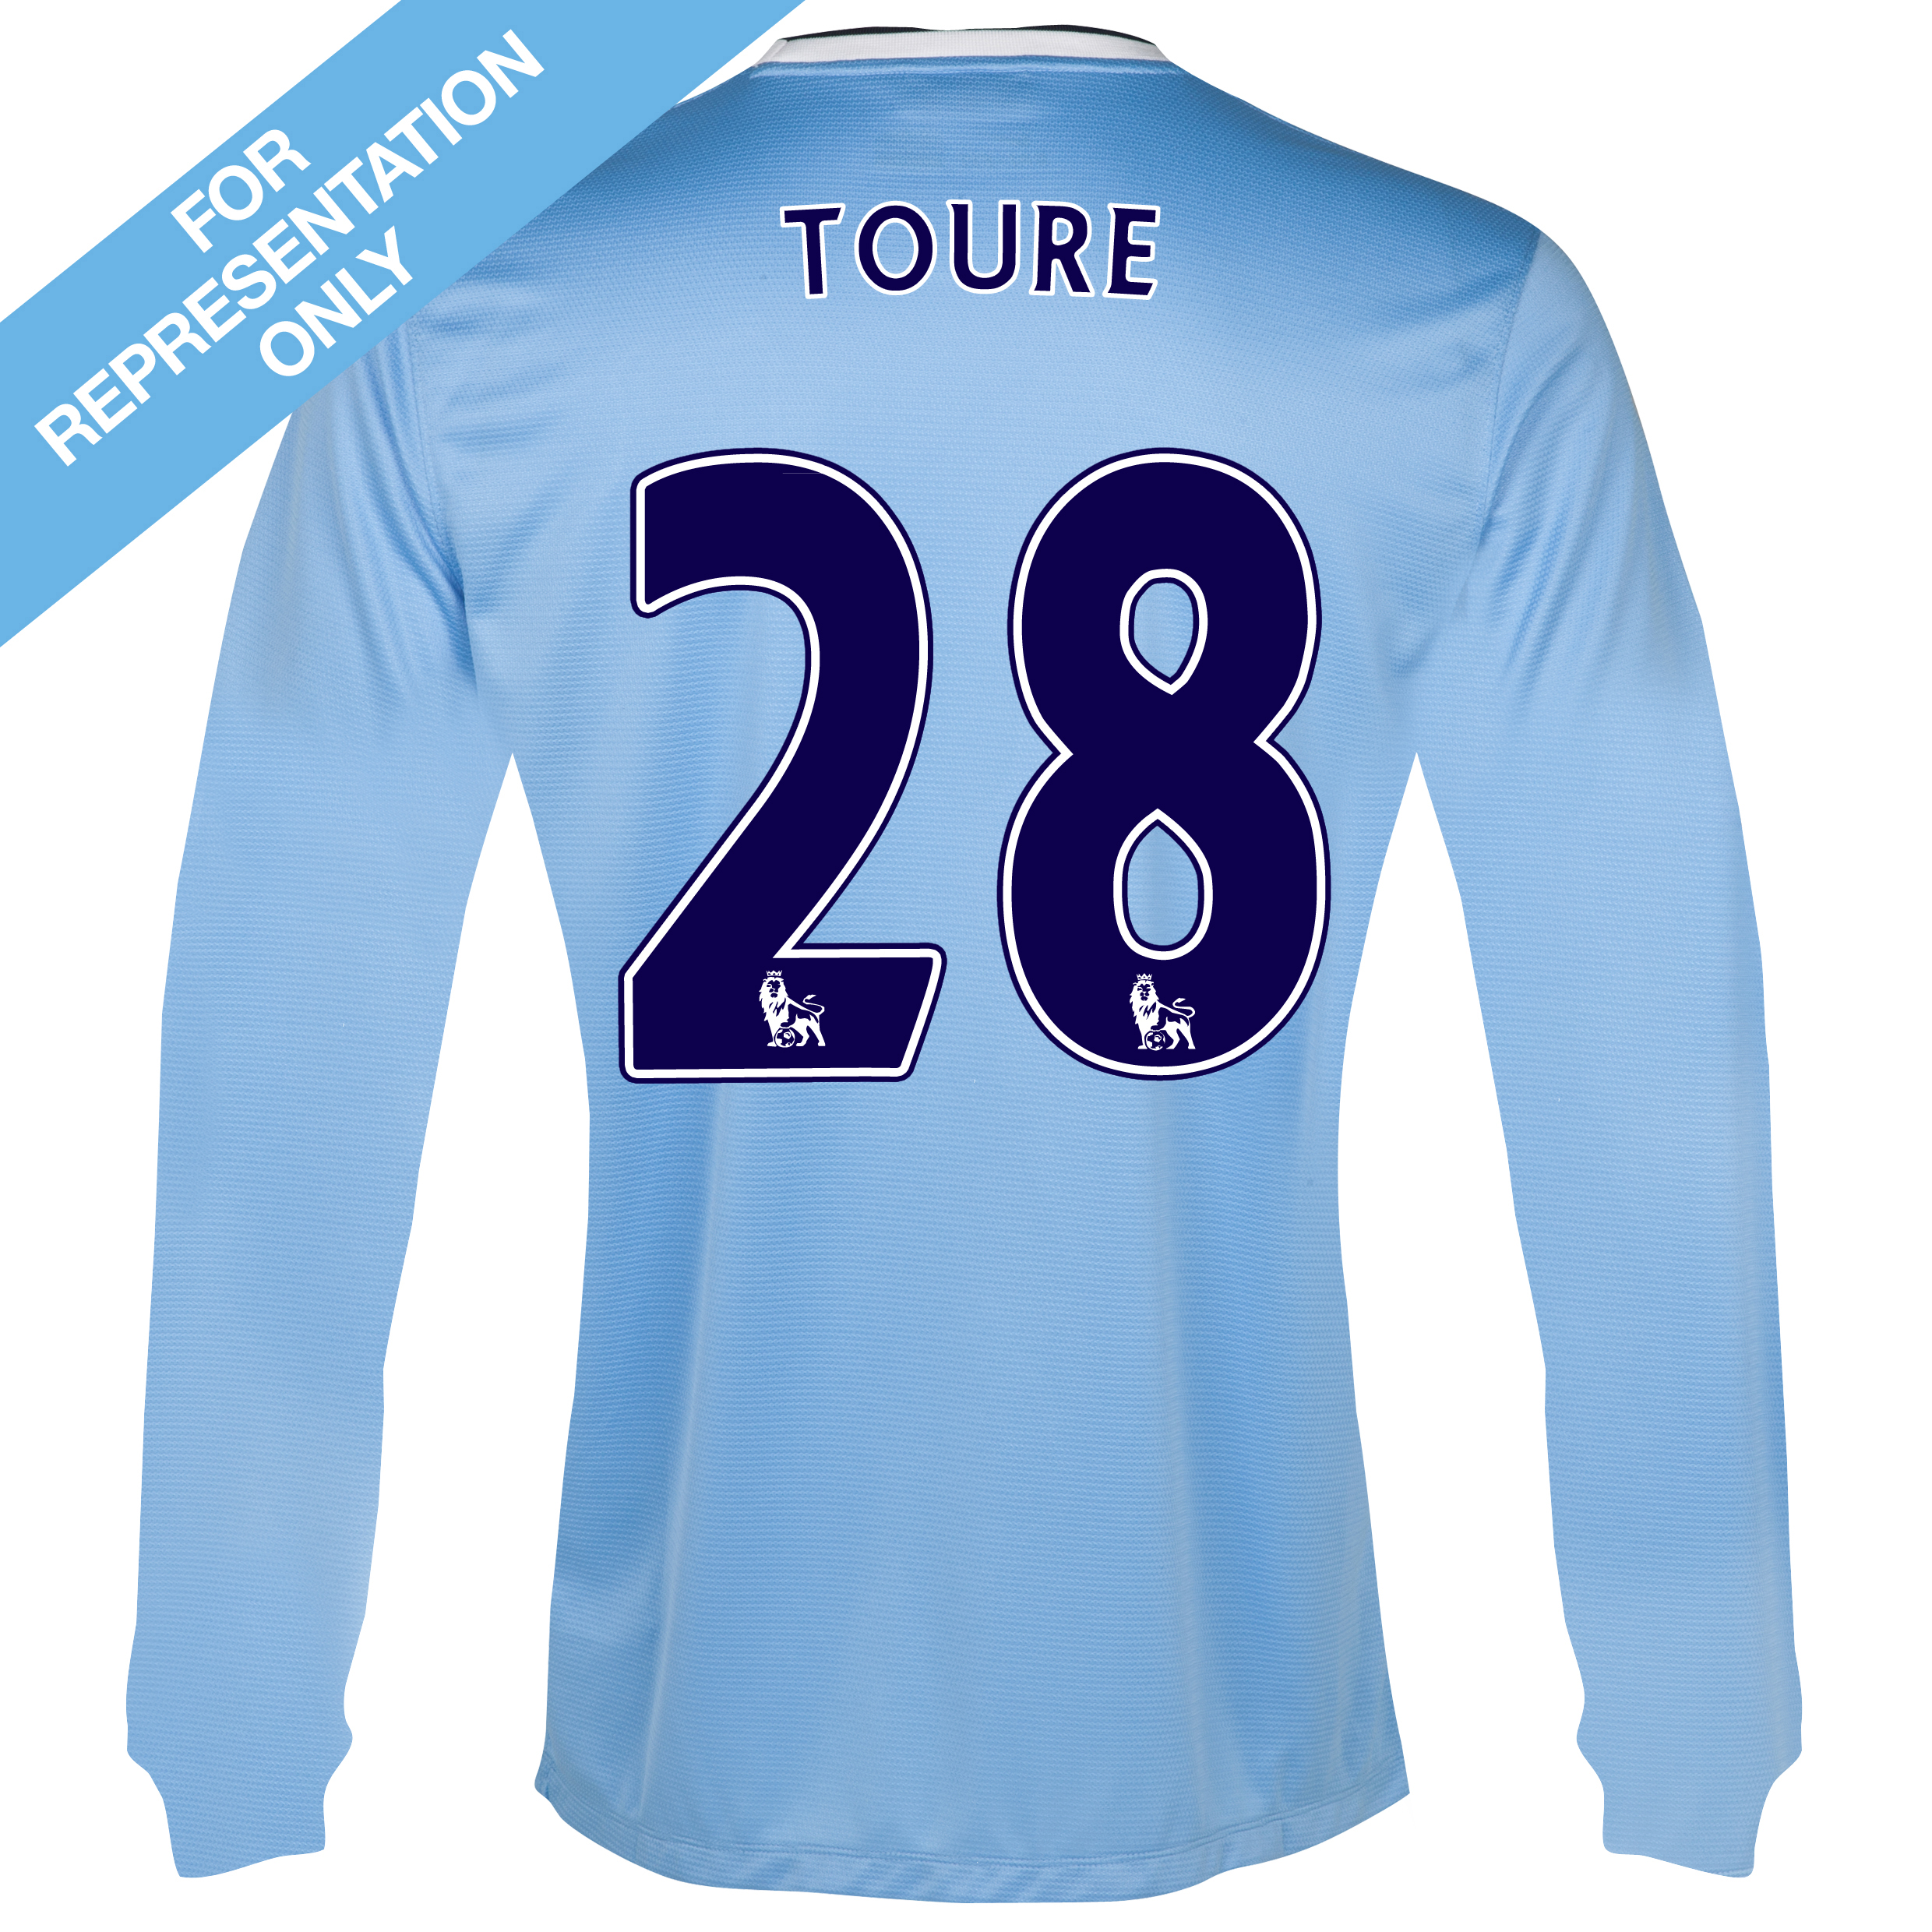 Manchester City Home Shirt 2013/14 - Long Sleeved with Toure 28 printing